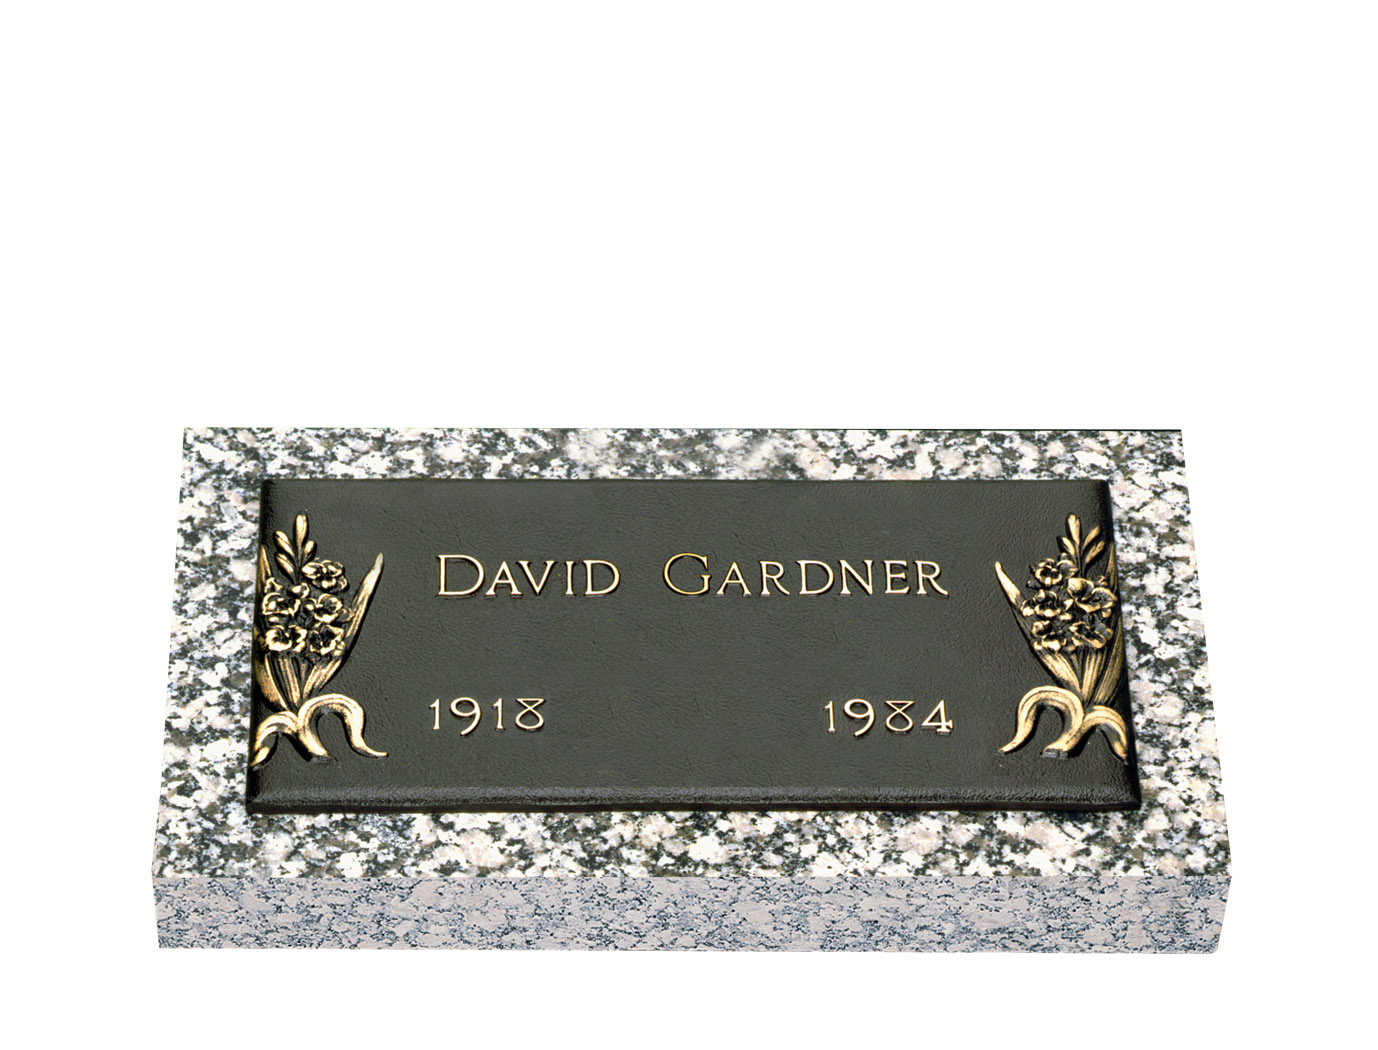 Infant Bronze Grave Markers | LoveMarkers.com Flat Headstones For ...